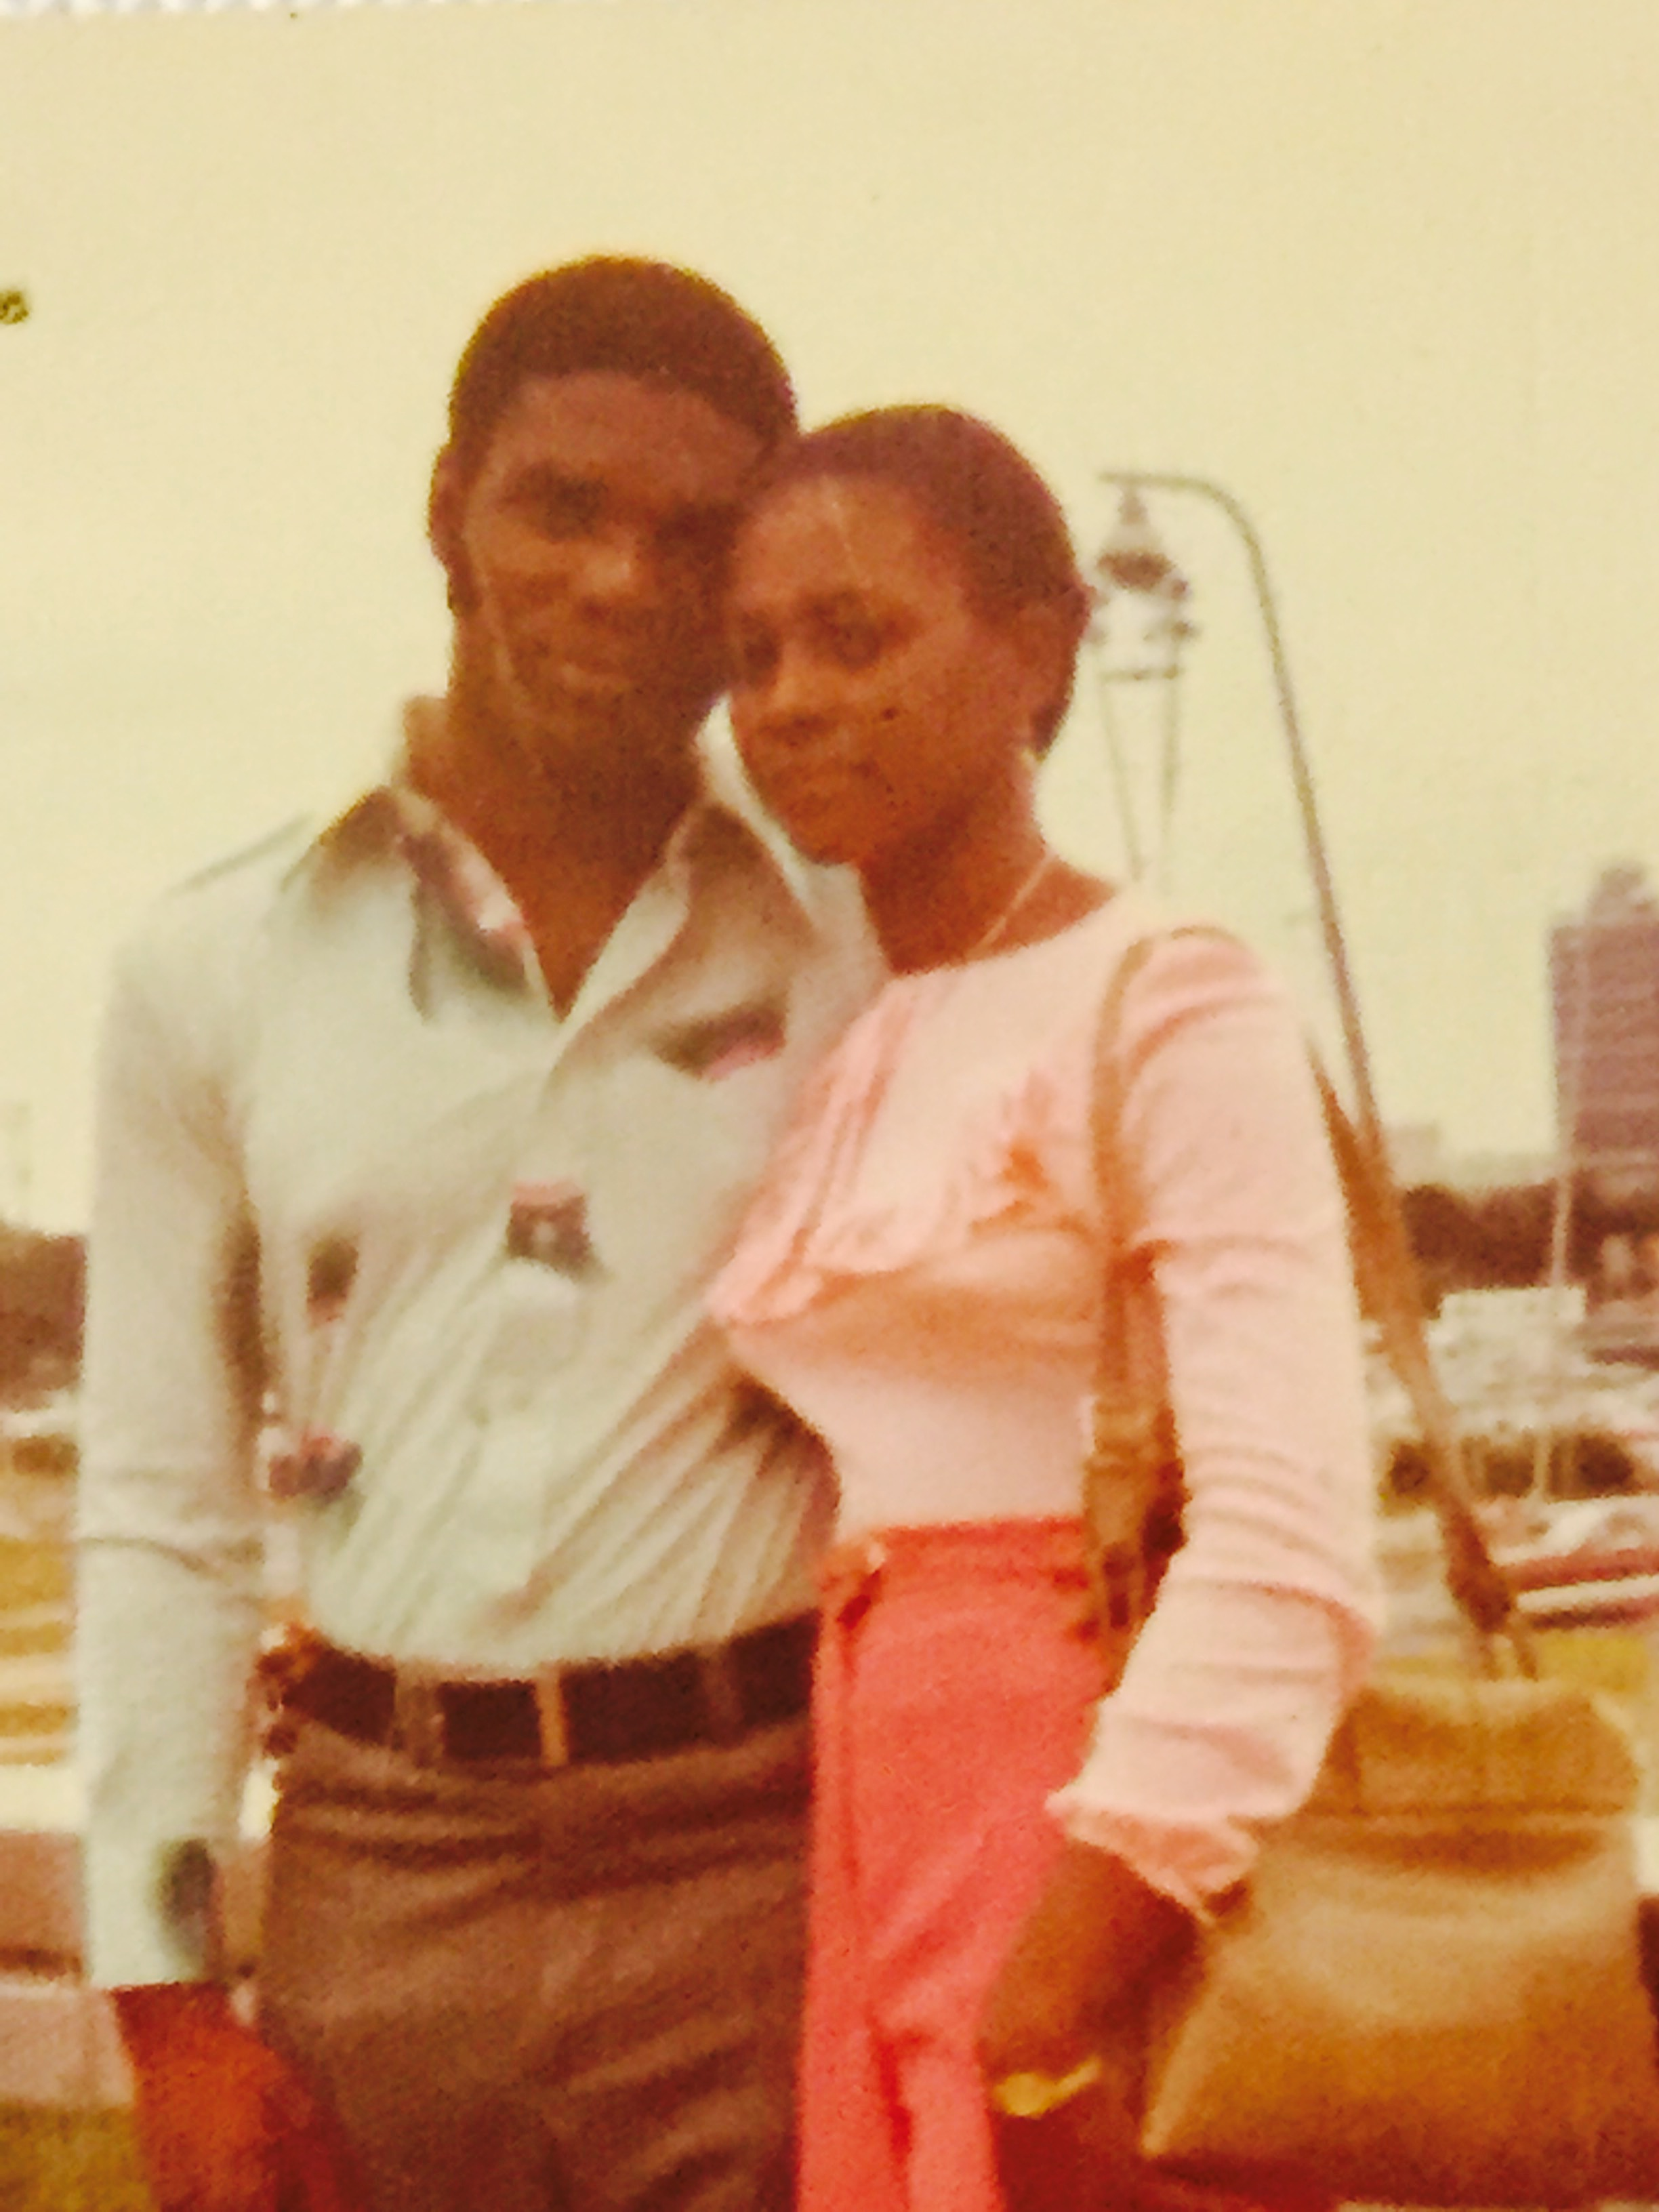 Nathalie's mom and dad in the 70s